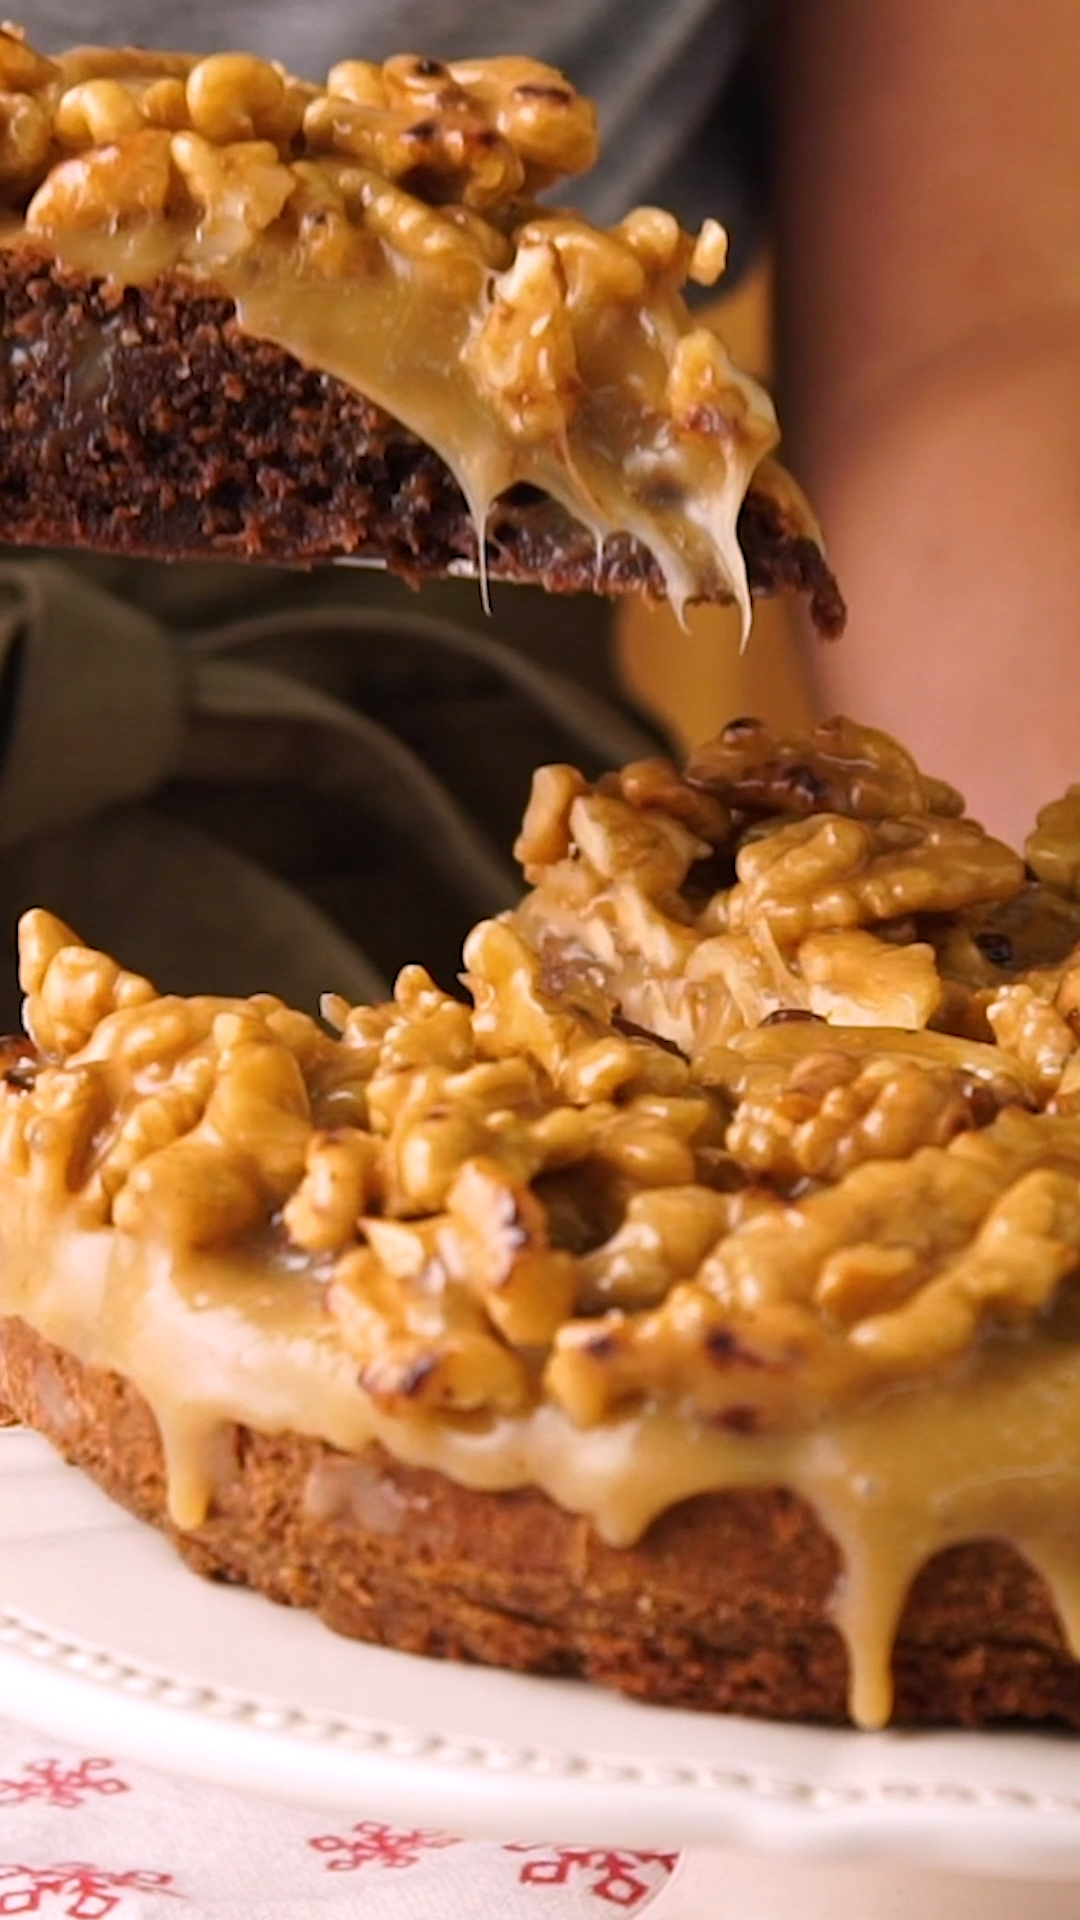 Coffee, Nuts and Caramel Cake